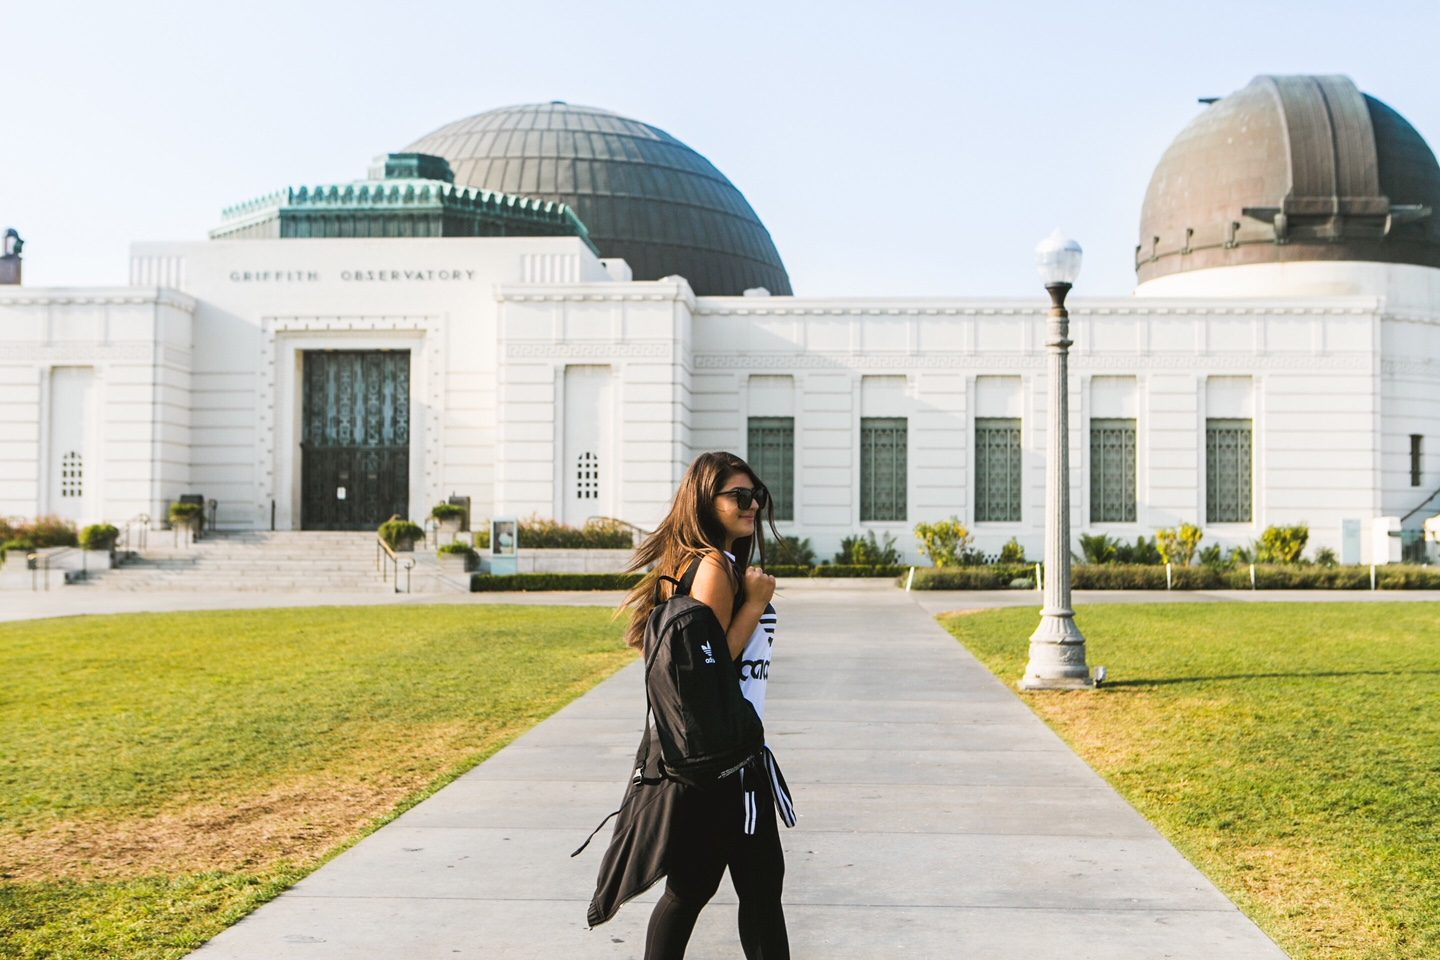 adidas - griffith observatory - los angeles